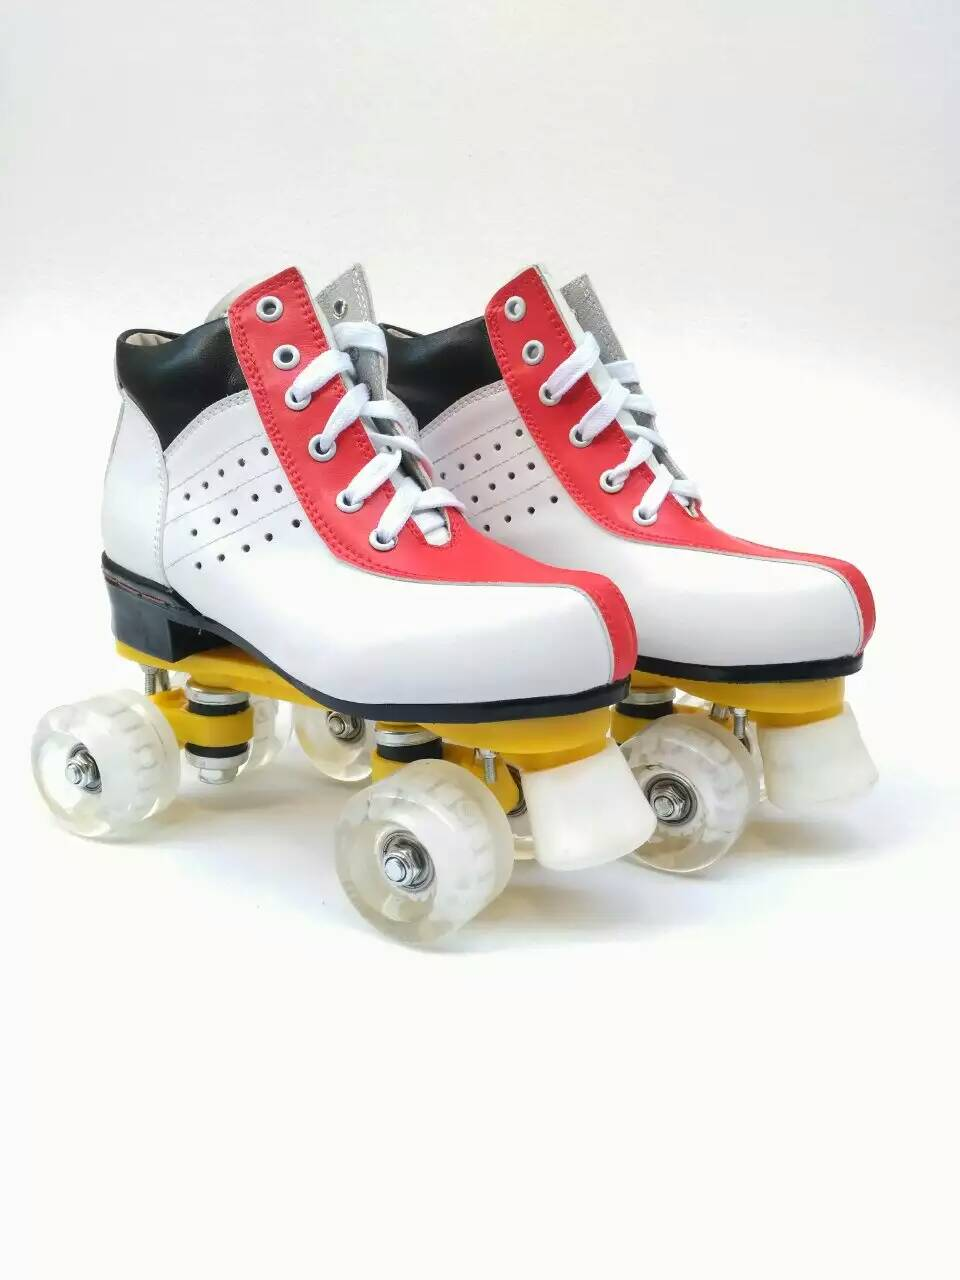 Skate shoes price - 2017 New Style Arrival Wholesale Price 4 Wheel Speed Roller Skates Shoes Free Shipping